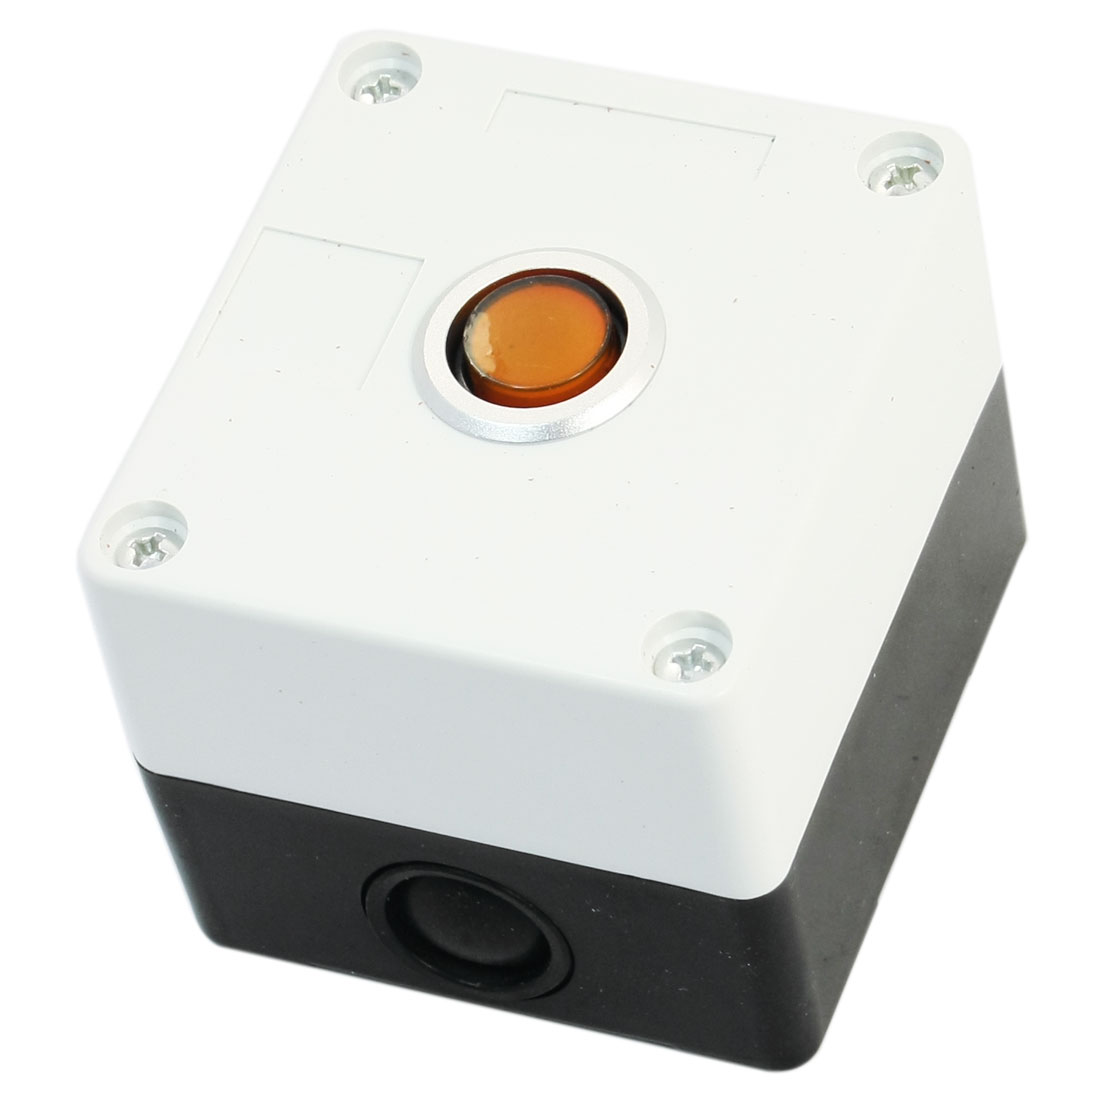 Orange Pilot Lamp SPDT 5-Pin 1NO 1NC Self-Locking Rectangle Plastic Push Button Station Switch Control Box AC220V 5A